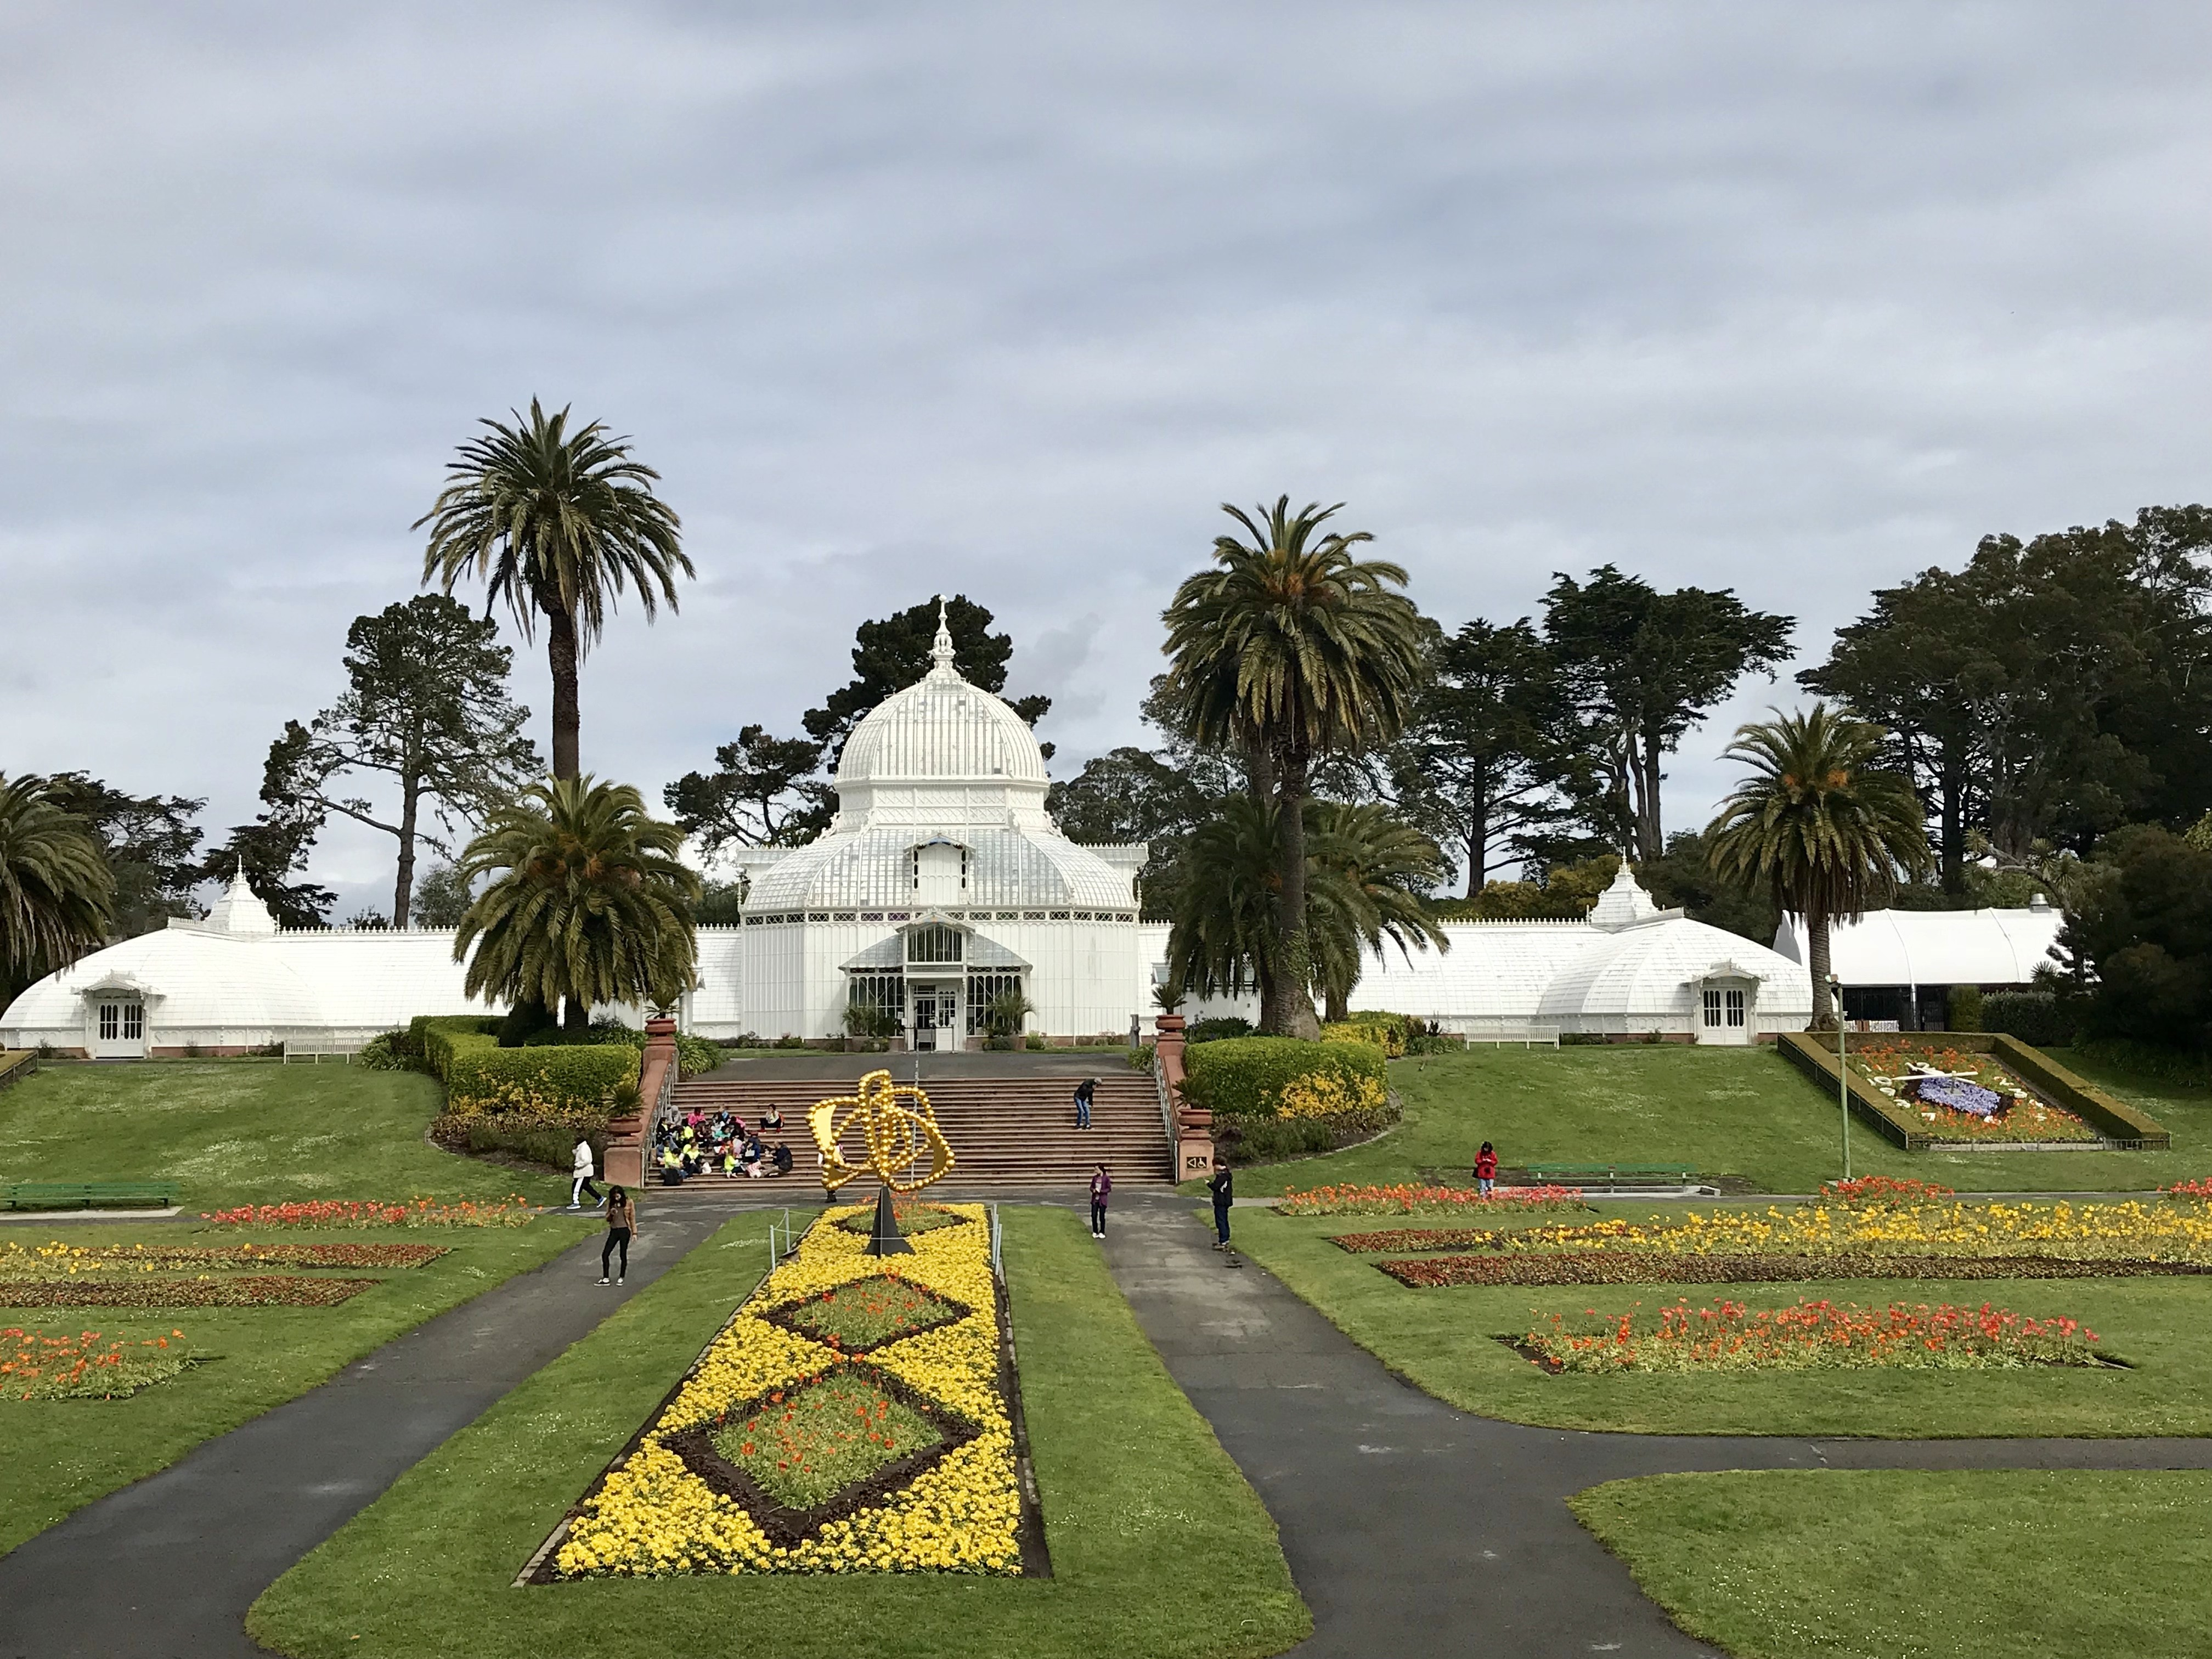 Desain Taman Exterior Free or Cheap Things to Do In Golden Gate Park